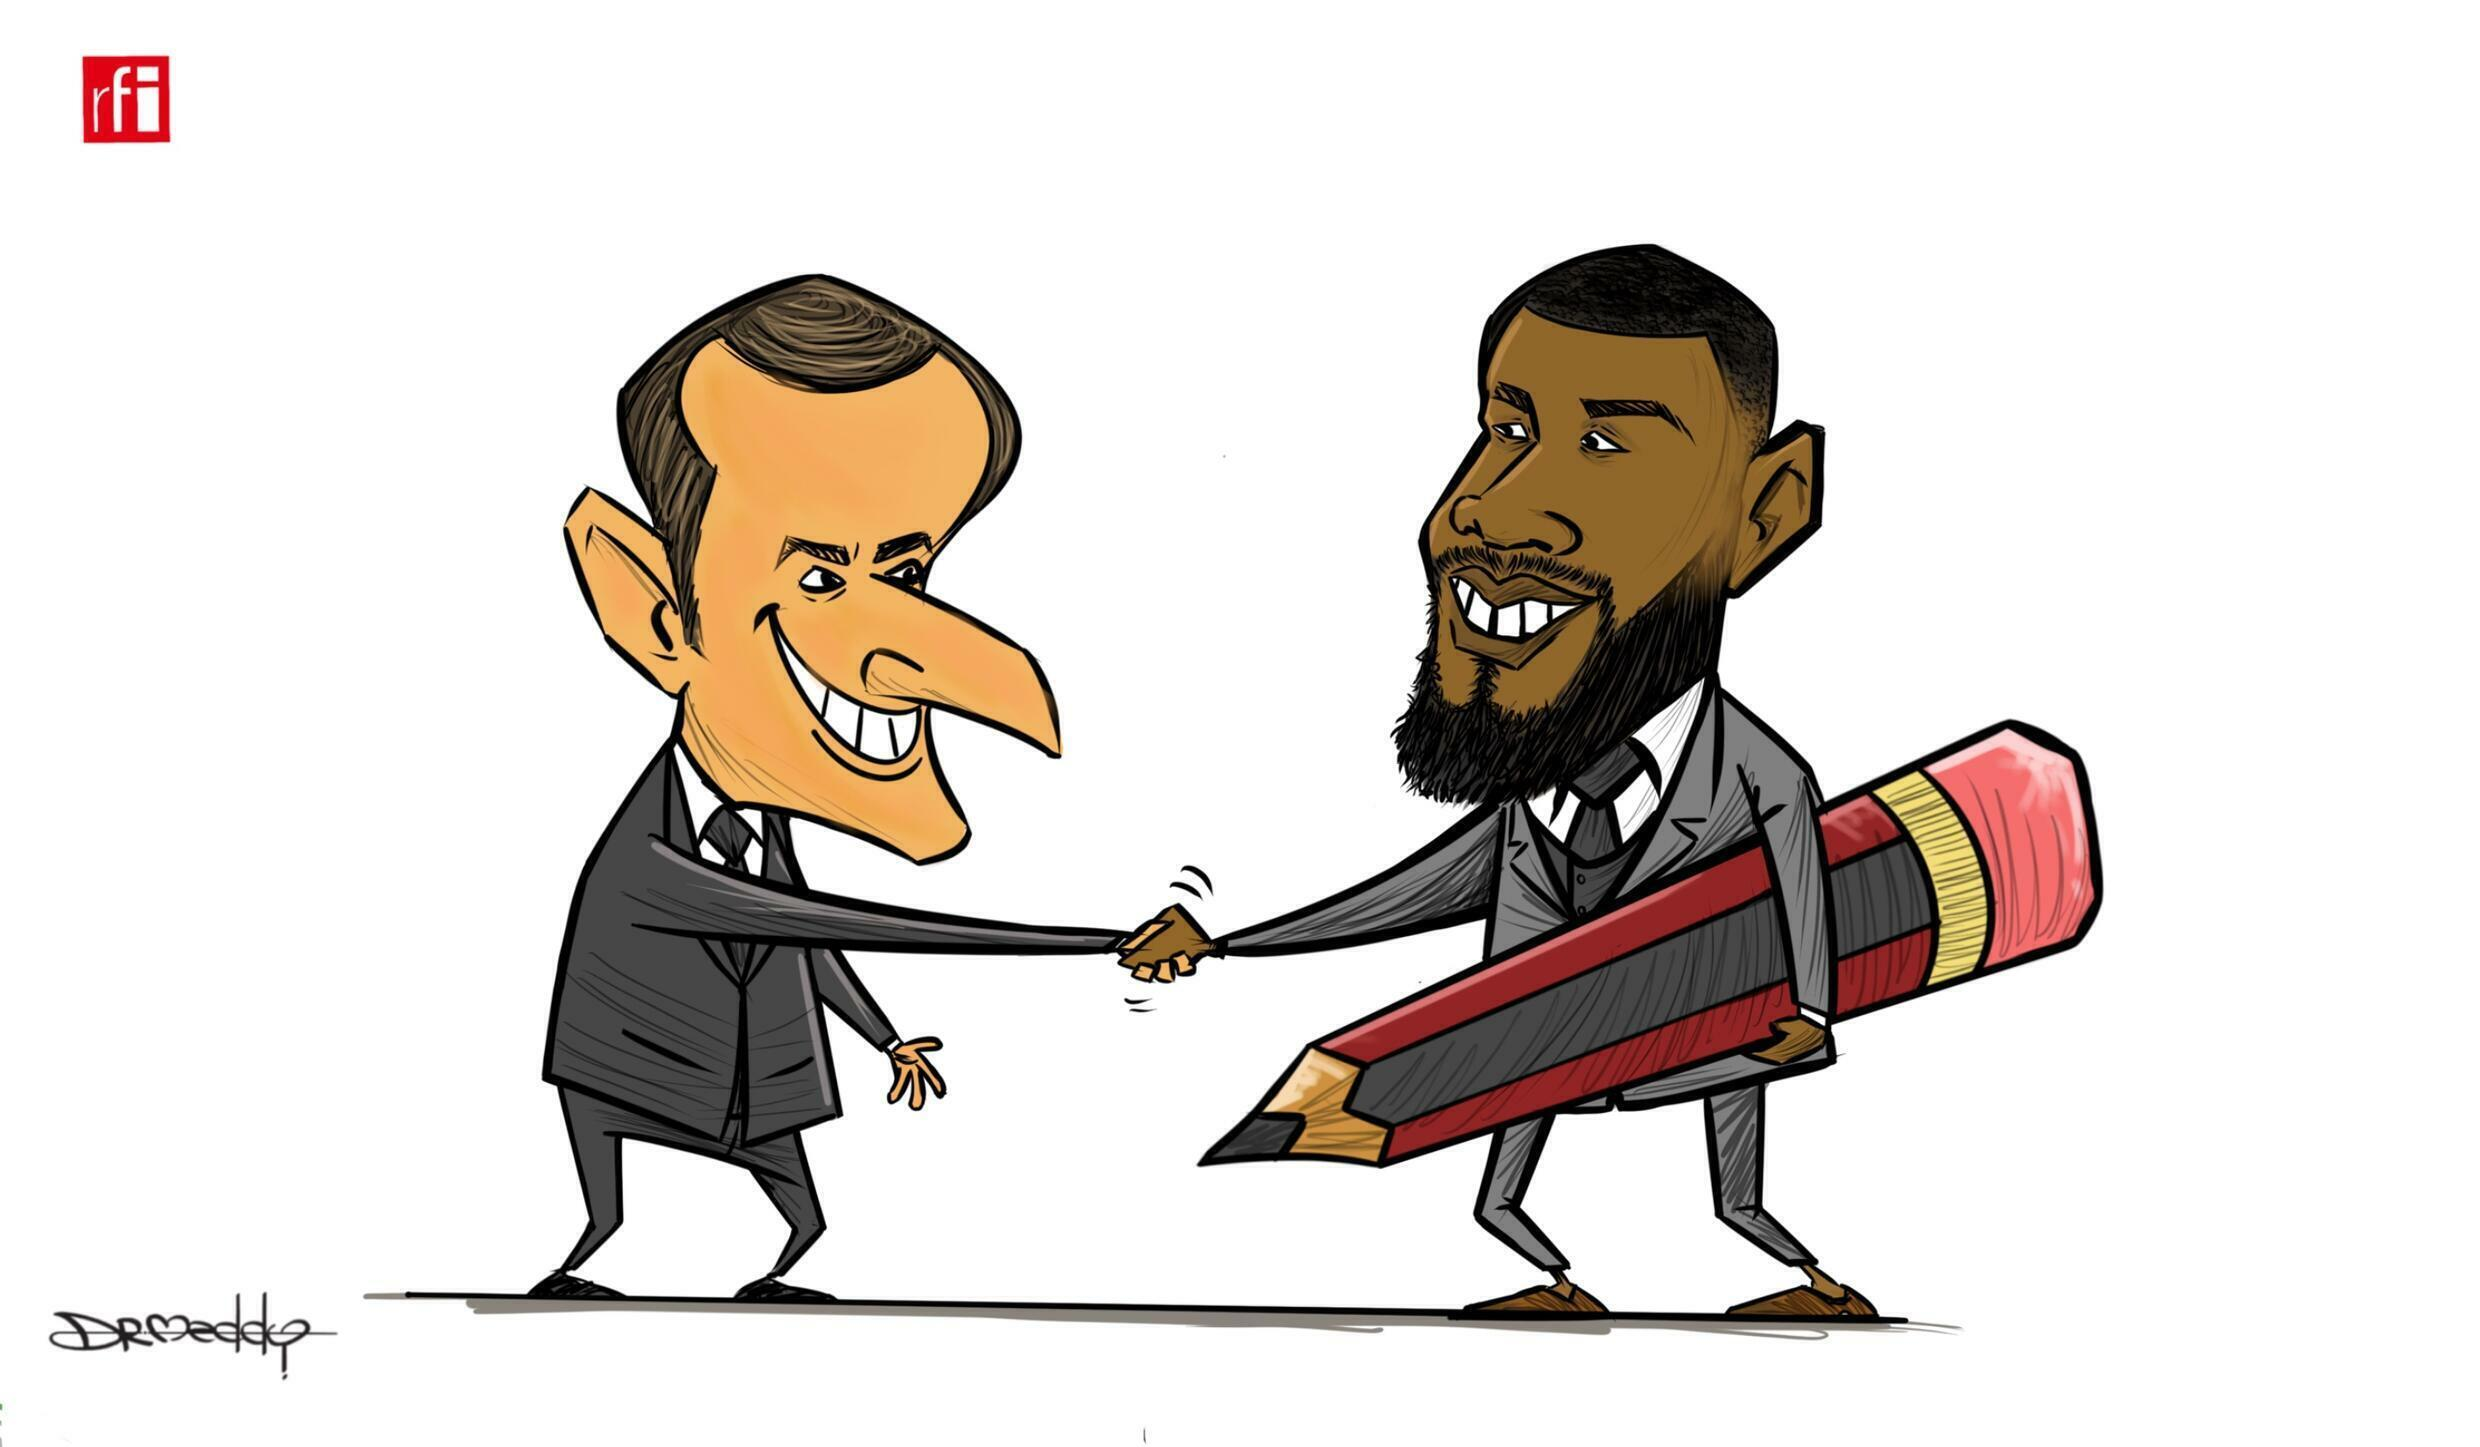 Africa-France: President Emmanuel Macron invites Youths and Civil Society instead of Head of State in this year's Summit, our Cartoonist Dr.Meddy also attended  (08/10/2021)